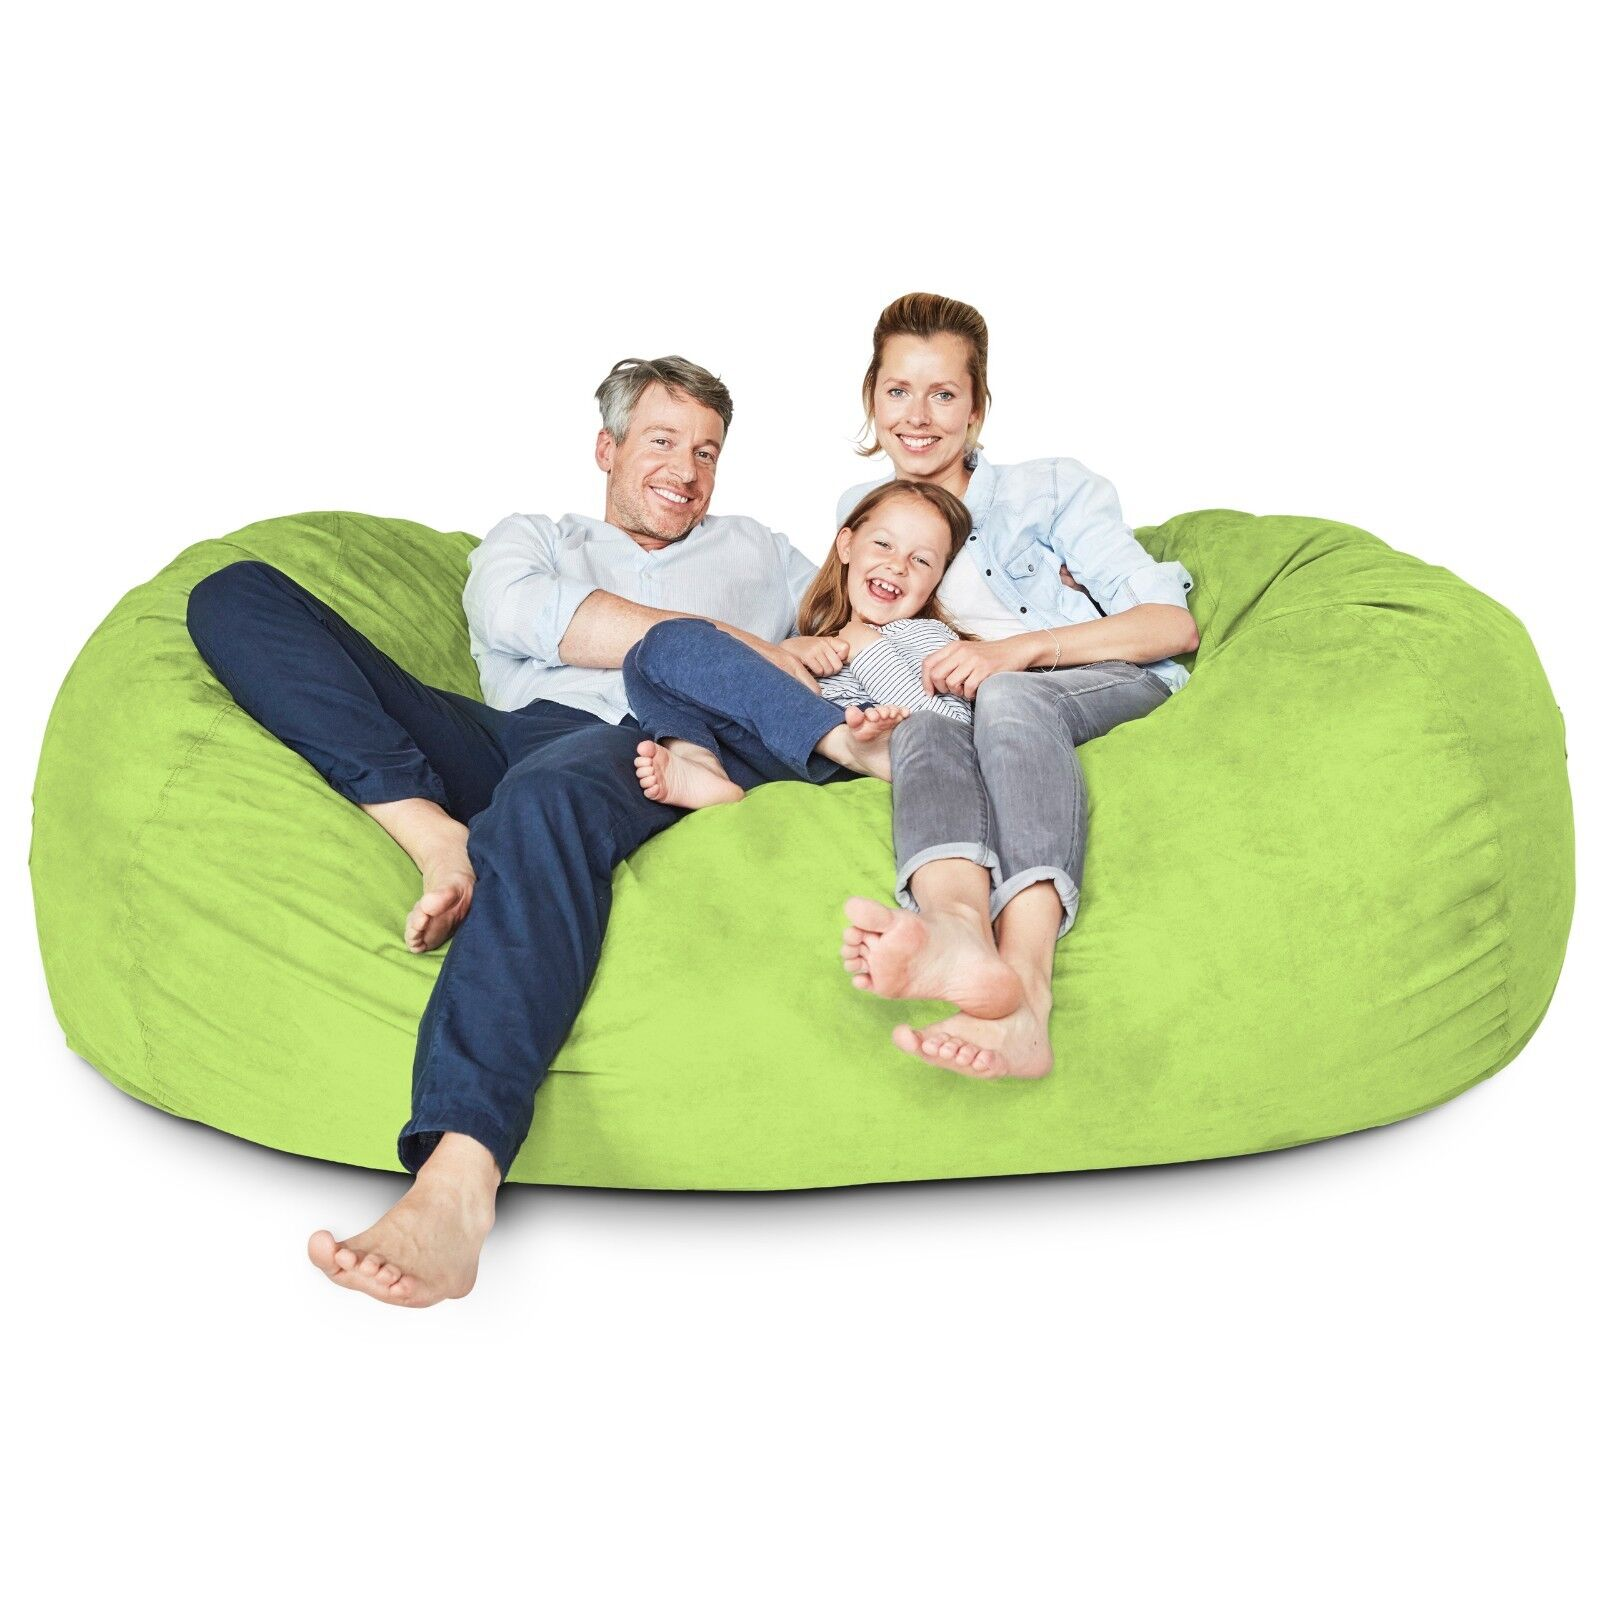 Bean Bag Giant Floor Pillow Gaming Chair Relax Seat Chill Sa